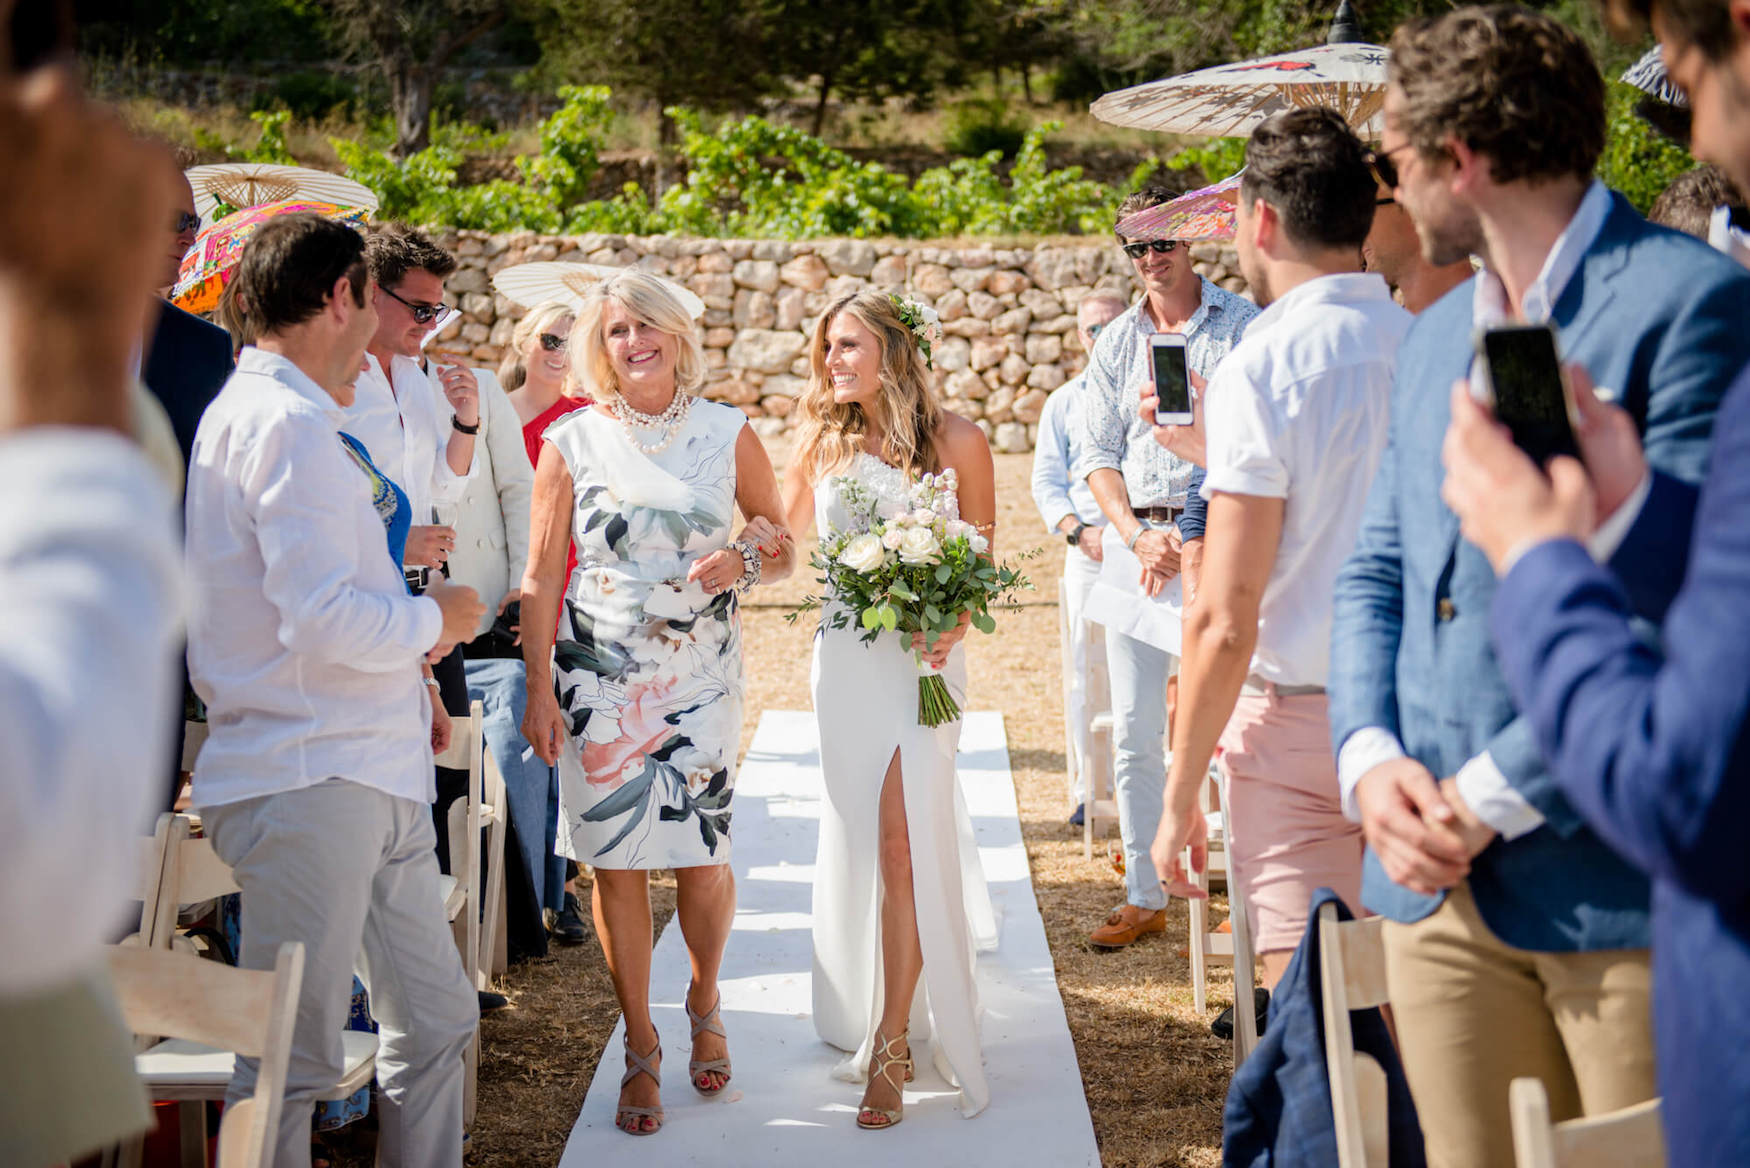 ceremony arrival mother of bride country view pronovia garden wedding zoe hardman hello magazine